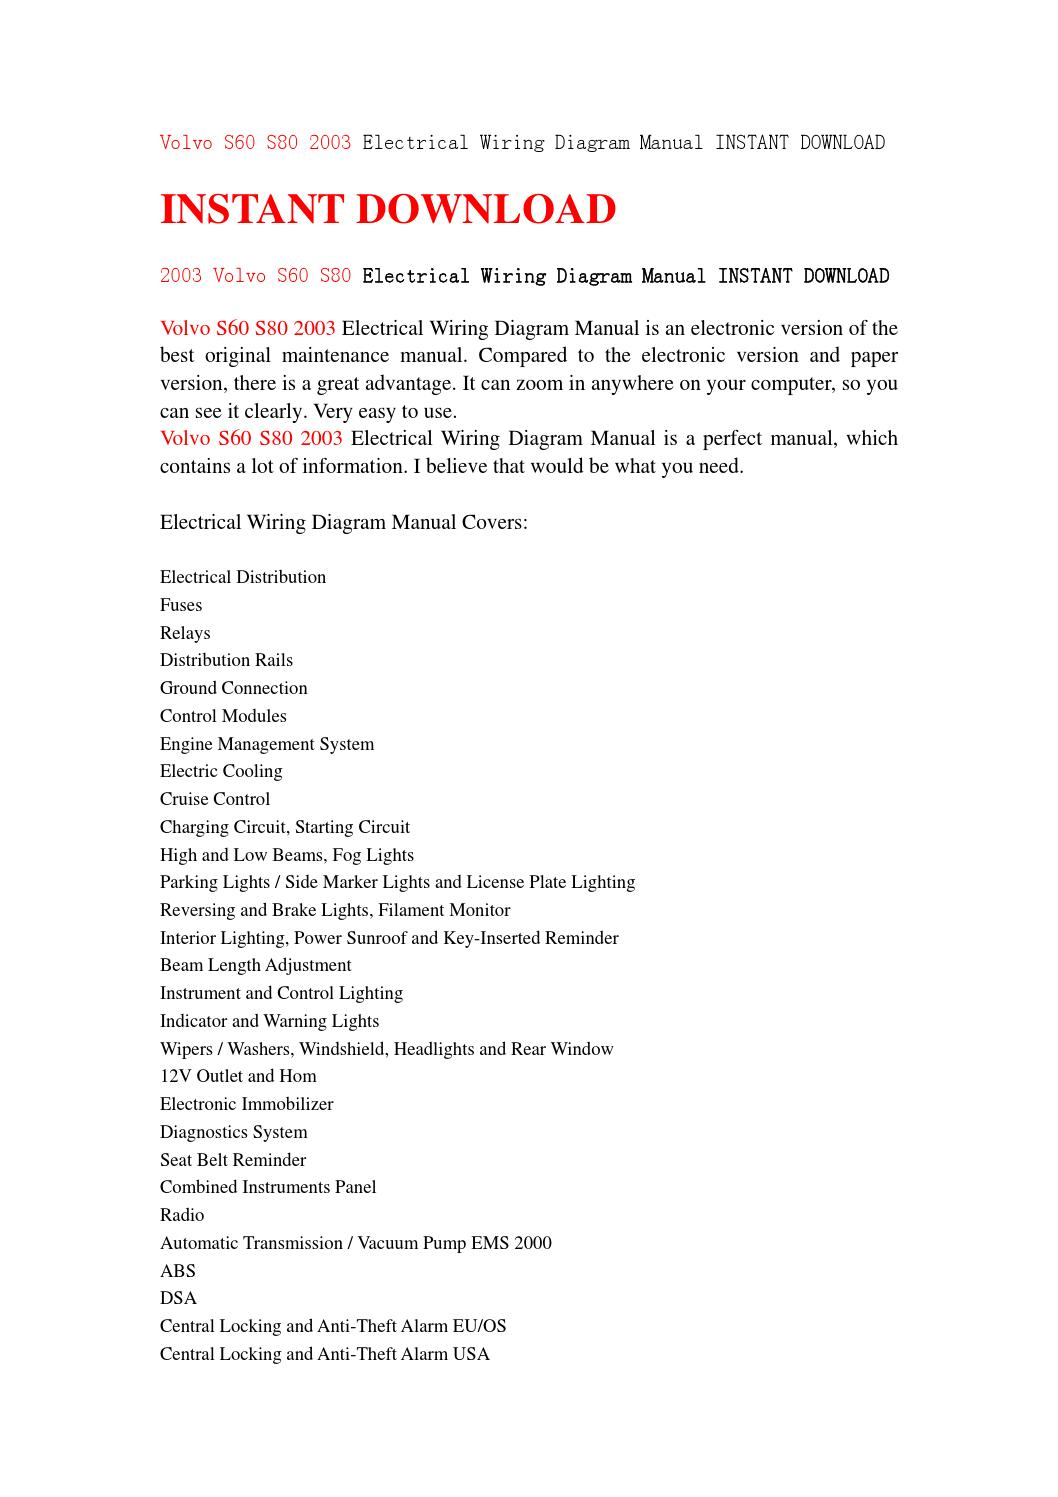 Volvo S60 S80 2003 Electrical Wiring Diagram Manual Instant Download Tail Light By Fksjmfse78 Issuu